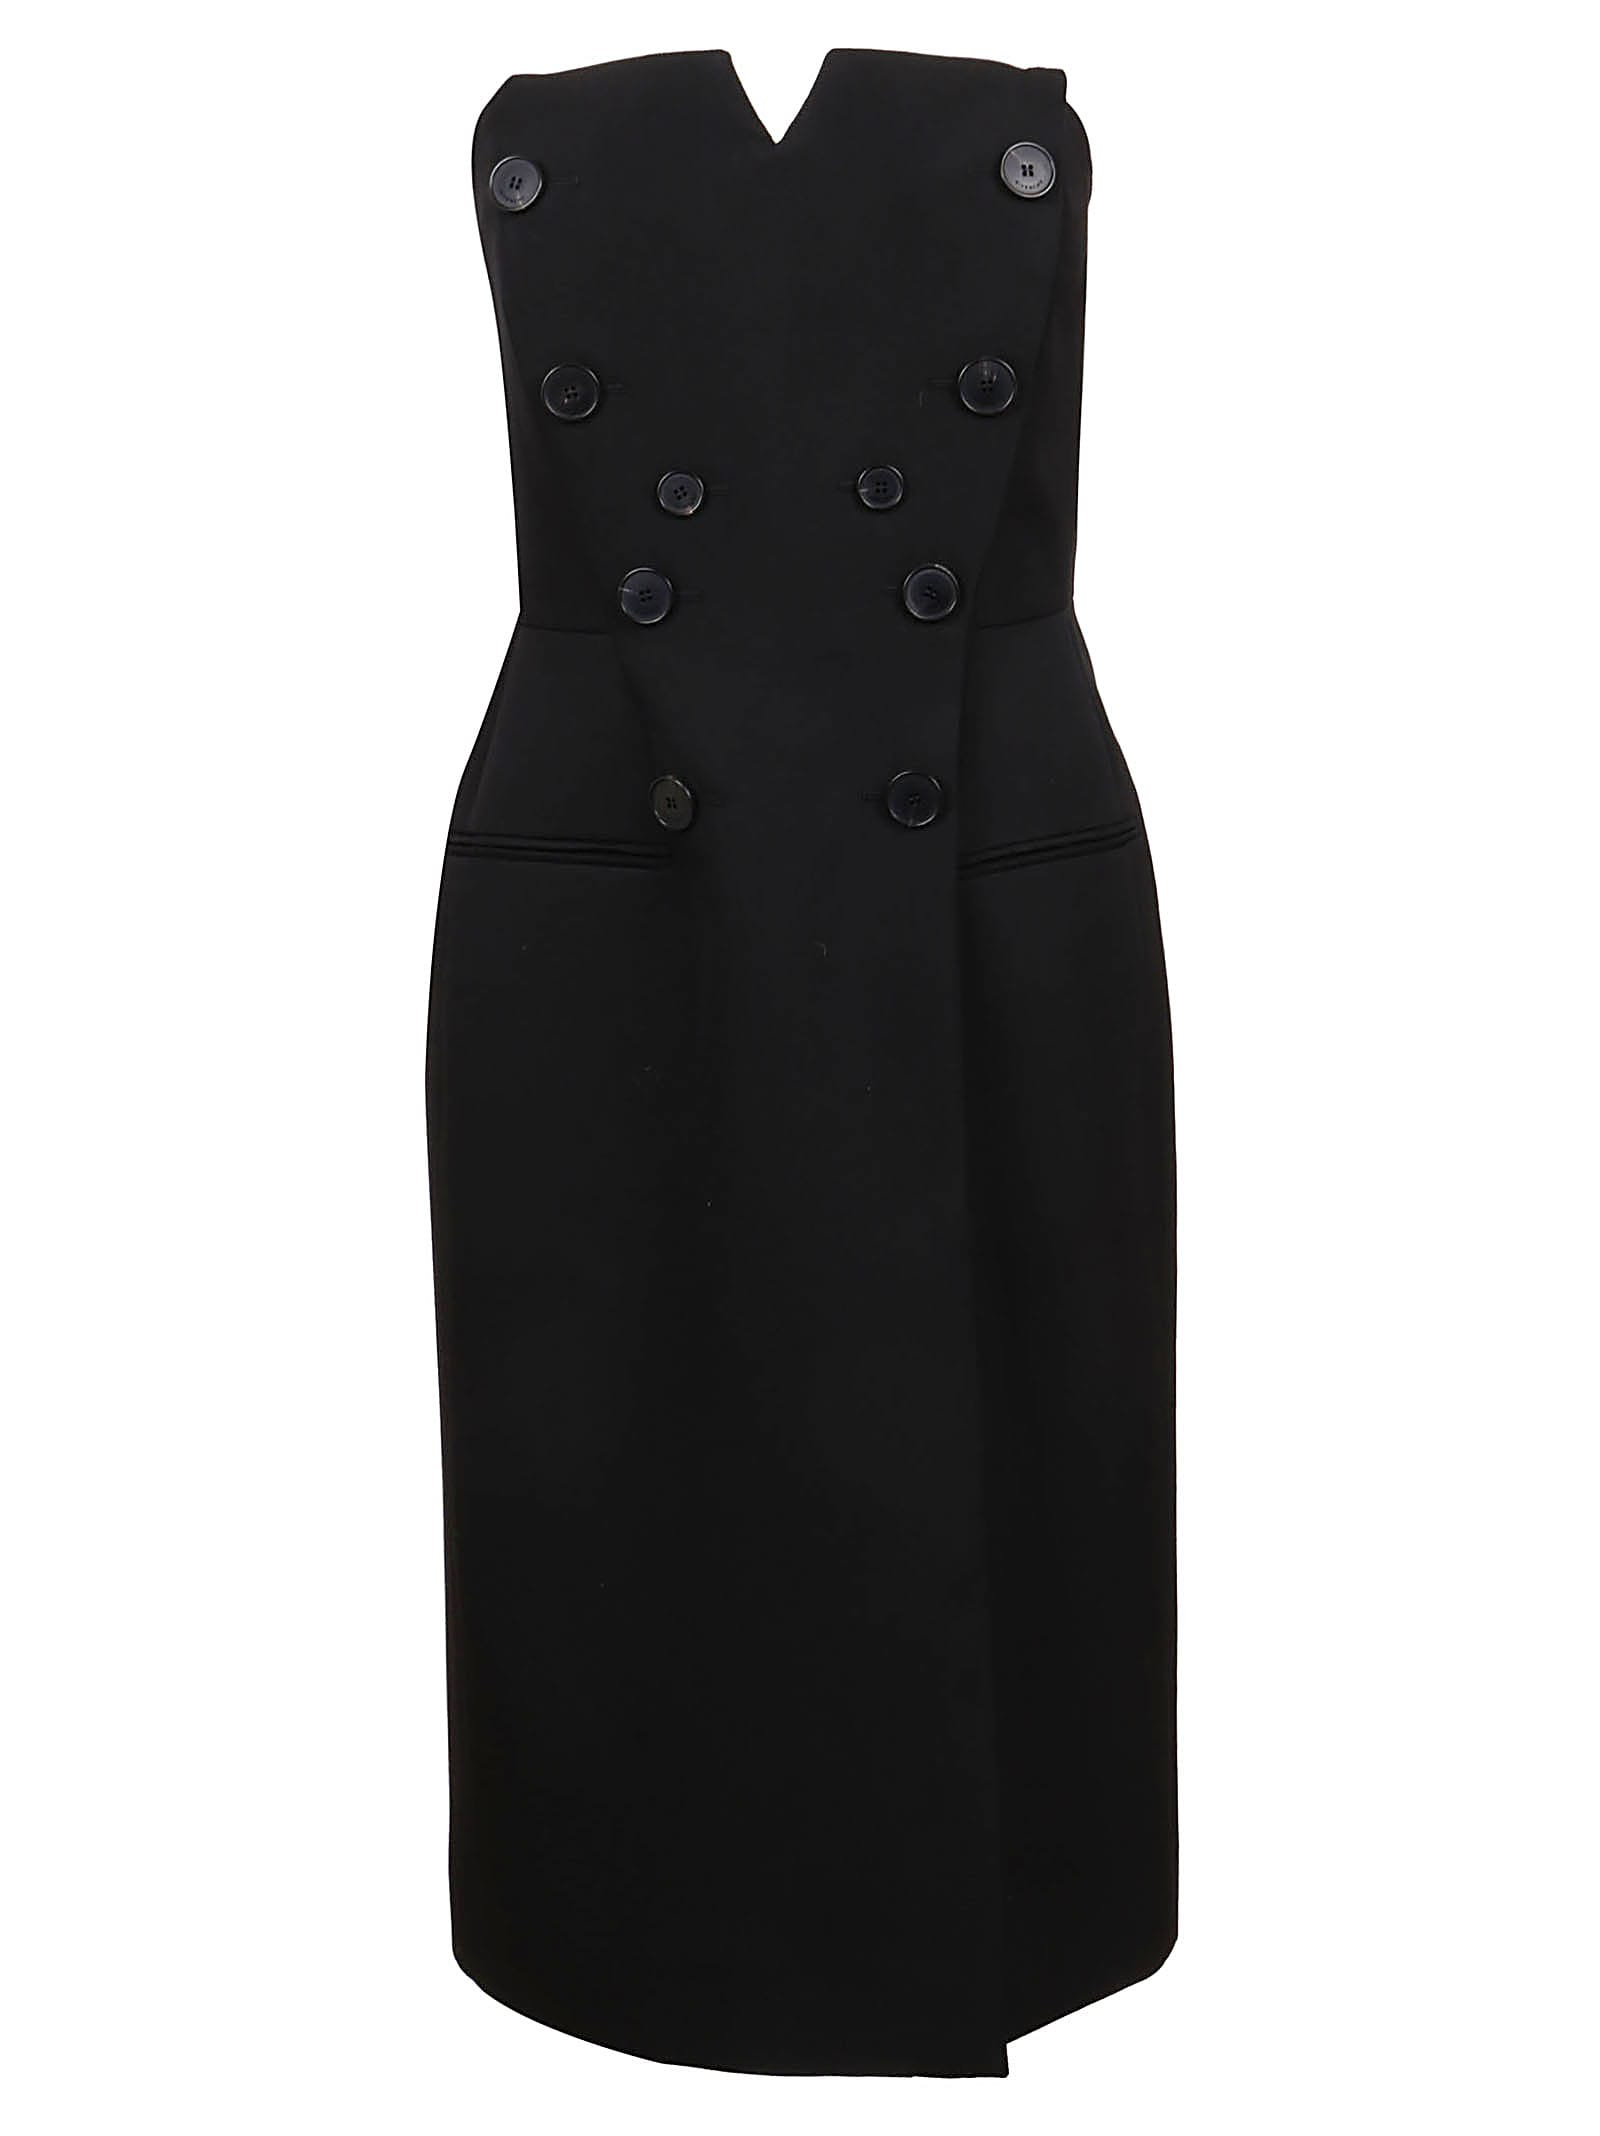 Buy Givenchy Bustier Dress In Grain De Poudre online, shop Givenchy with free shipping